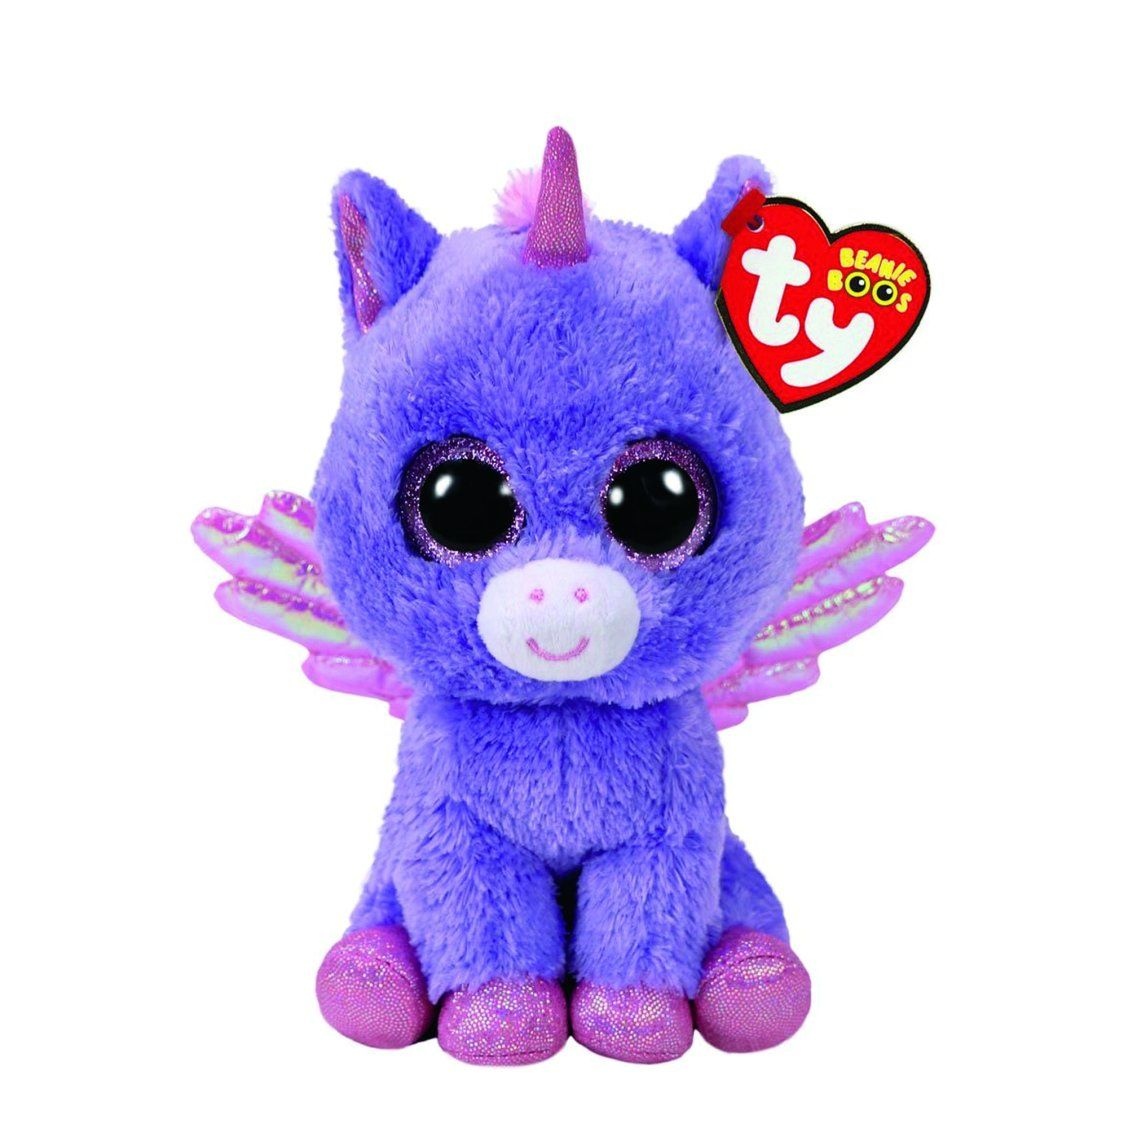 e91892e3cc2 TY Beanie Boo Small Athena the Unicorn Soft Toy